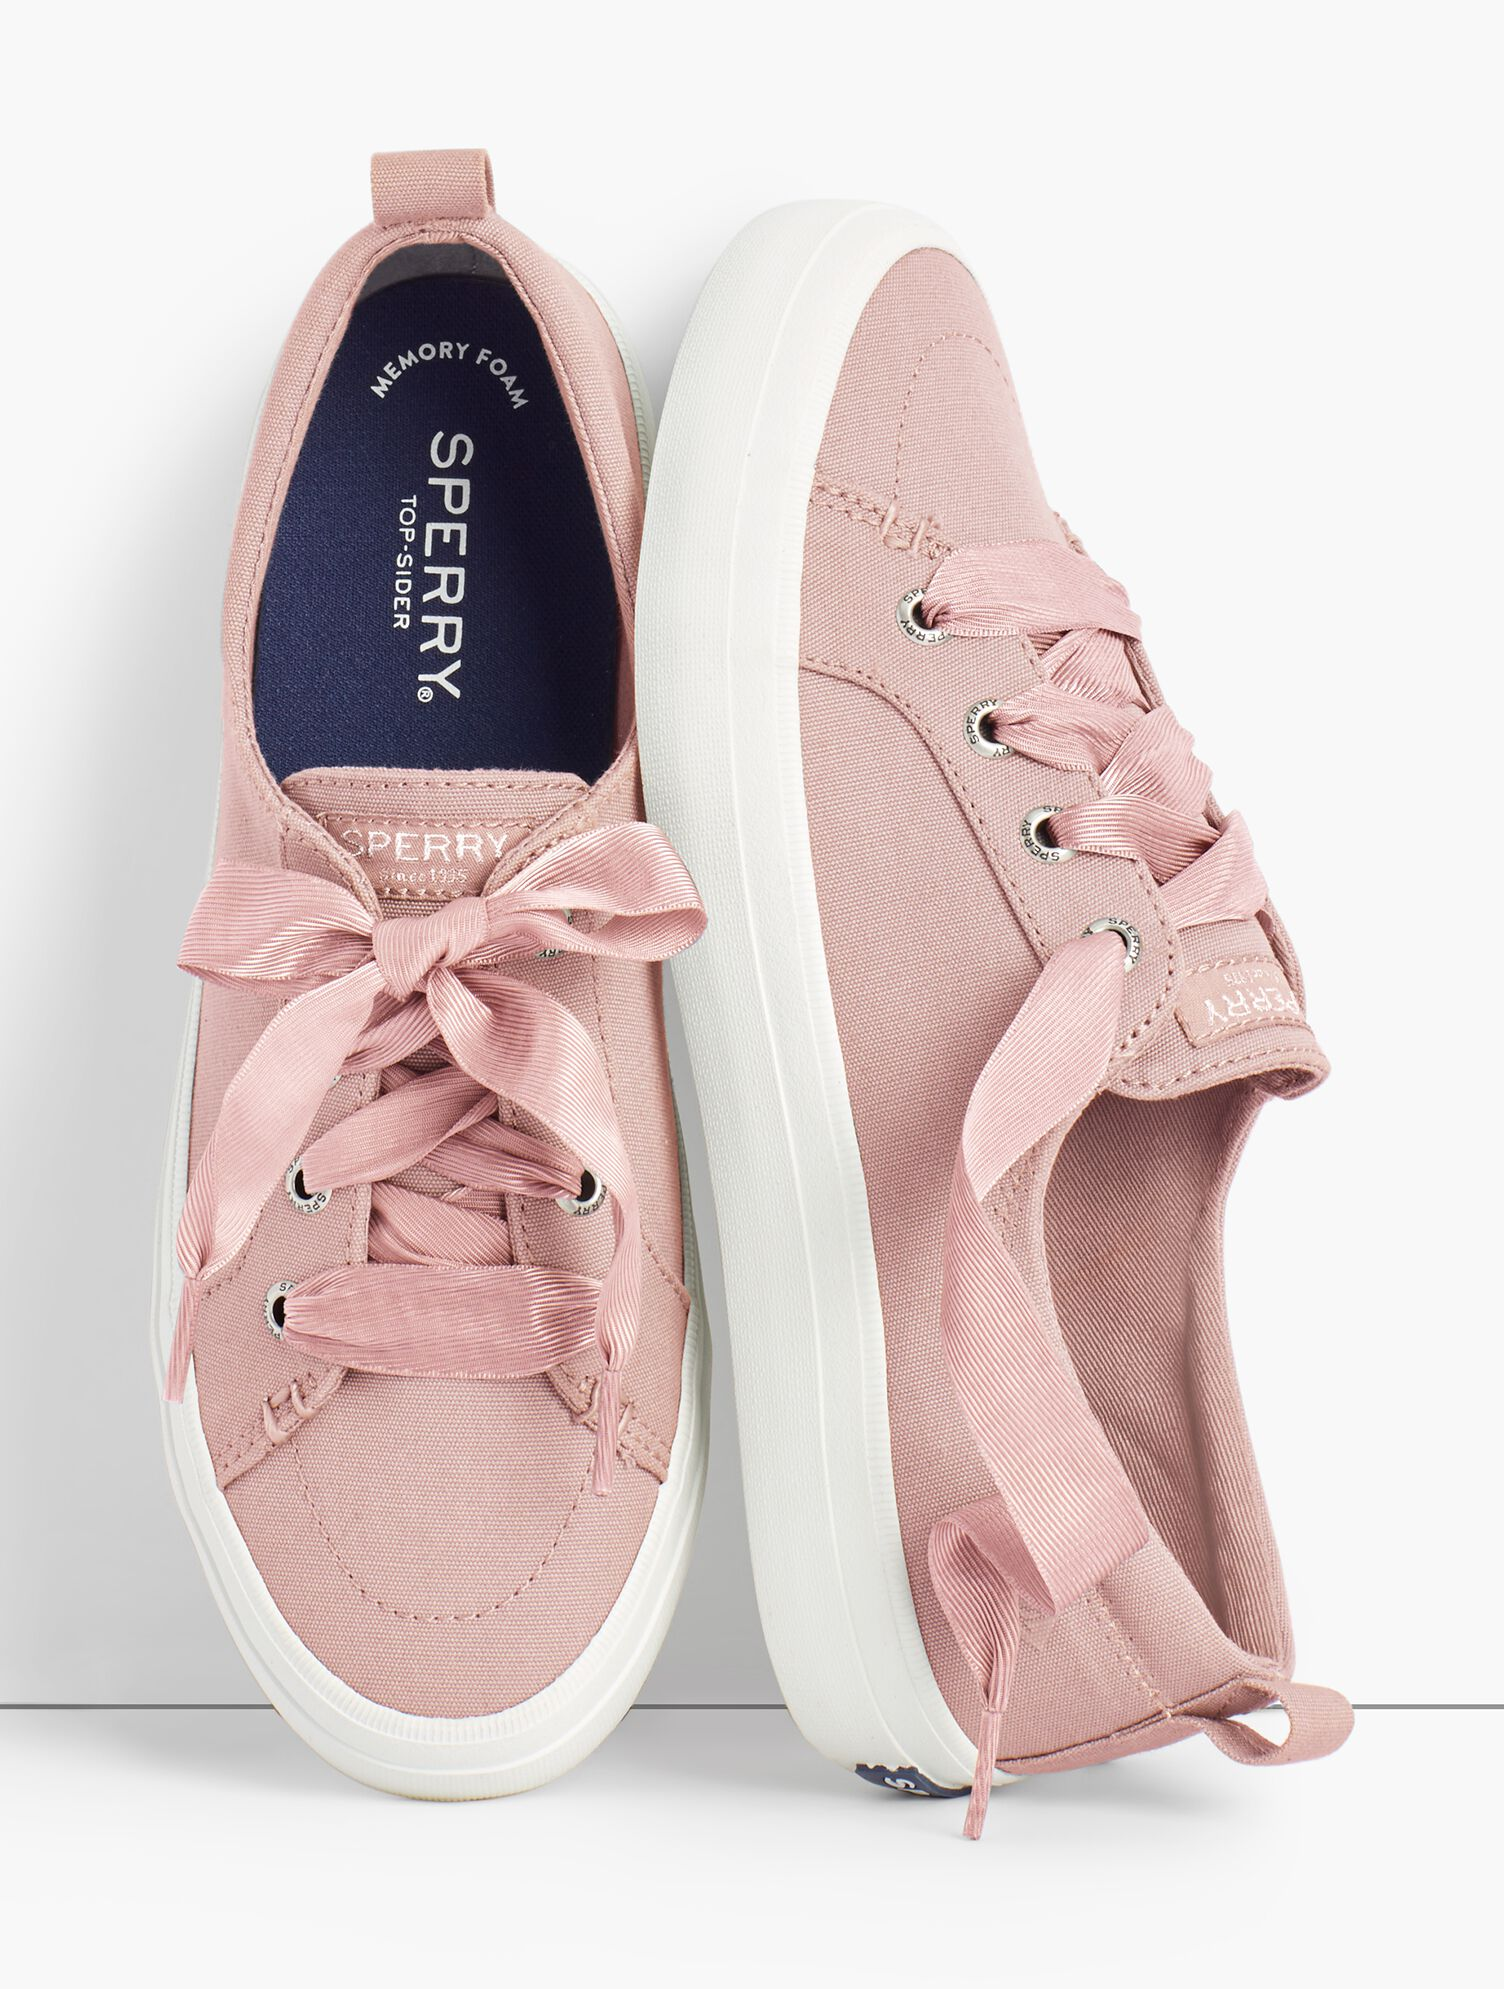 Crest Vibe Sperry (R) Sneakers | Talbots